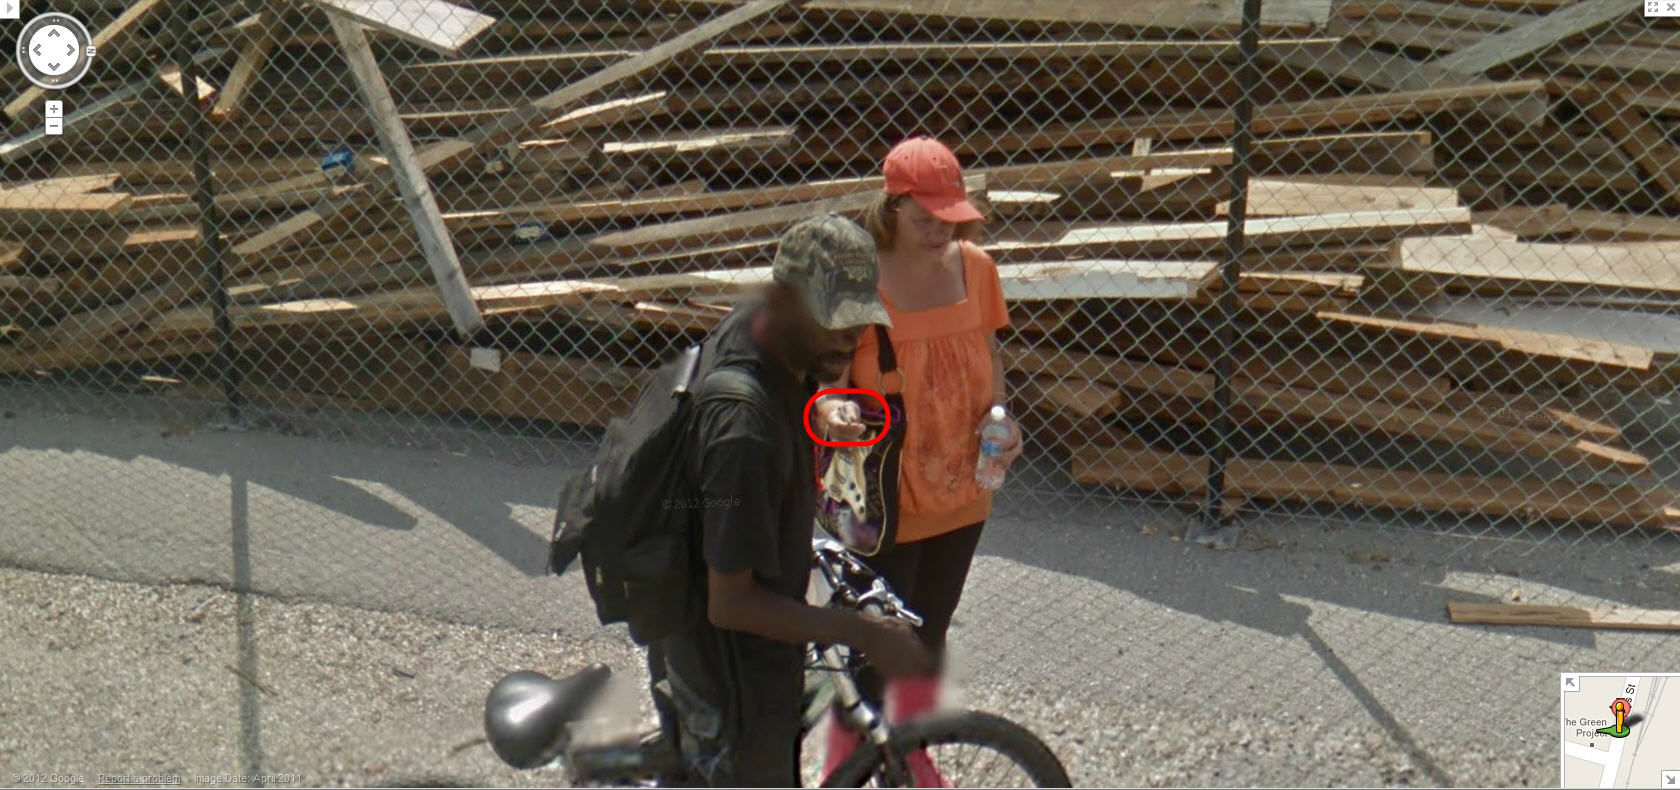 google-street-view-captures-a-drug-deal-in-new-orleans